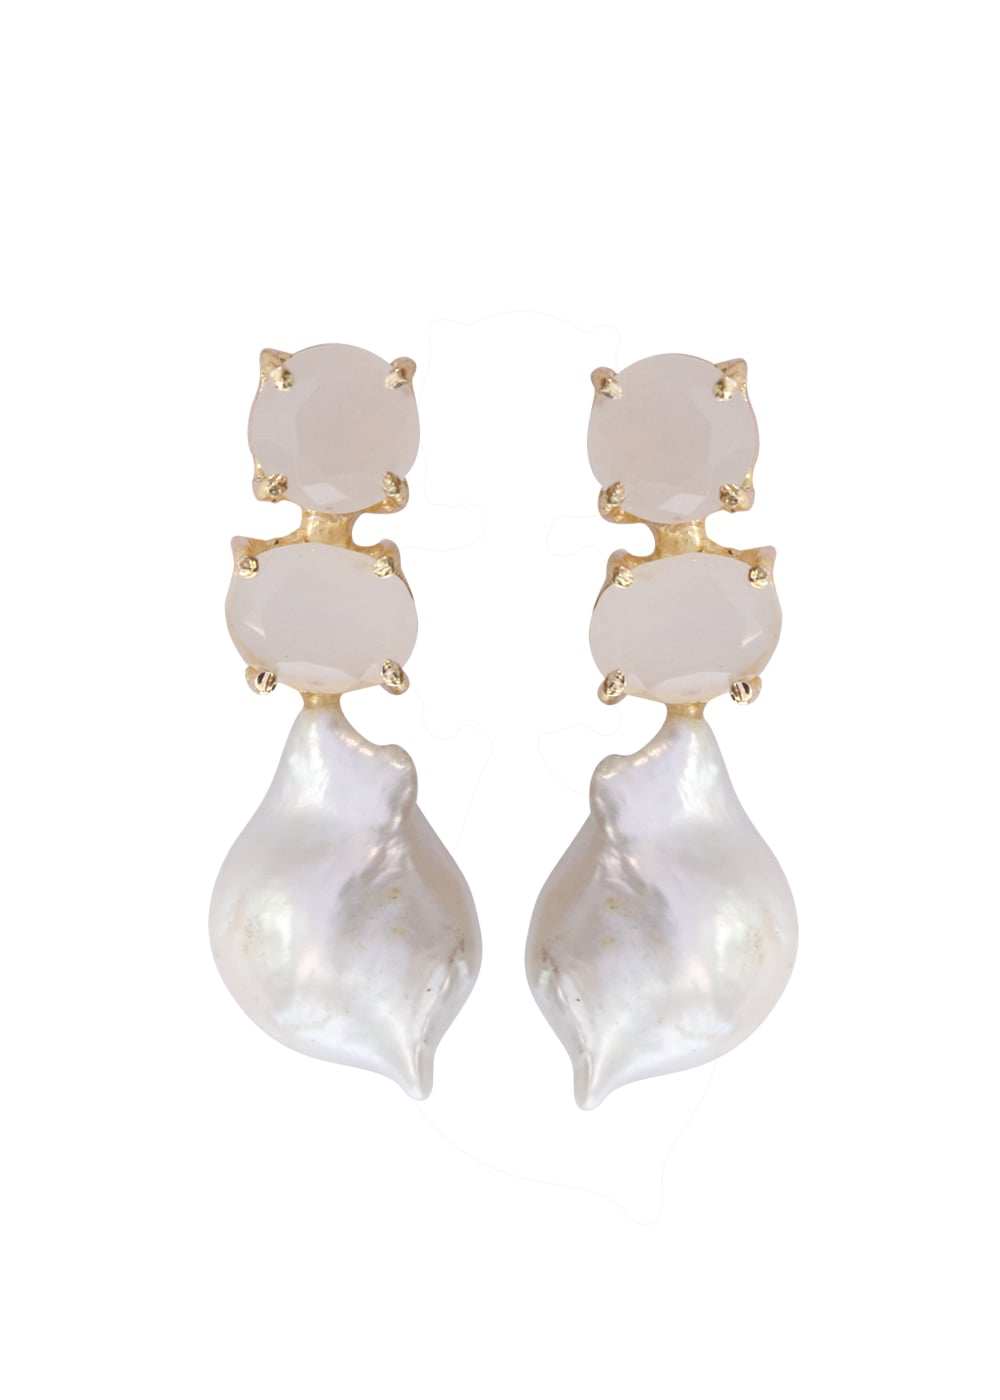 Baroque Stud Drop Earrings - Ssoul Eternal You